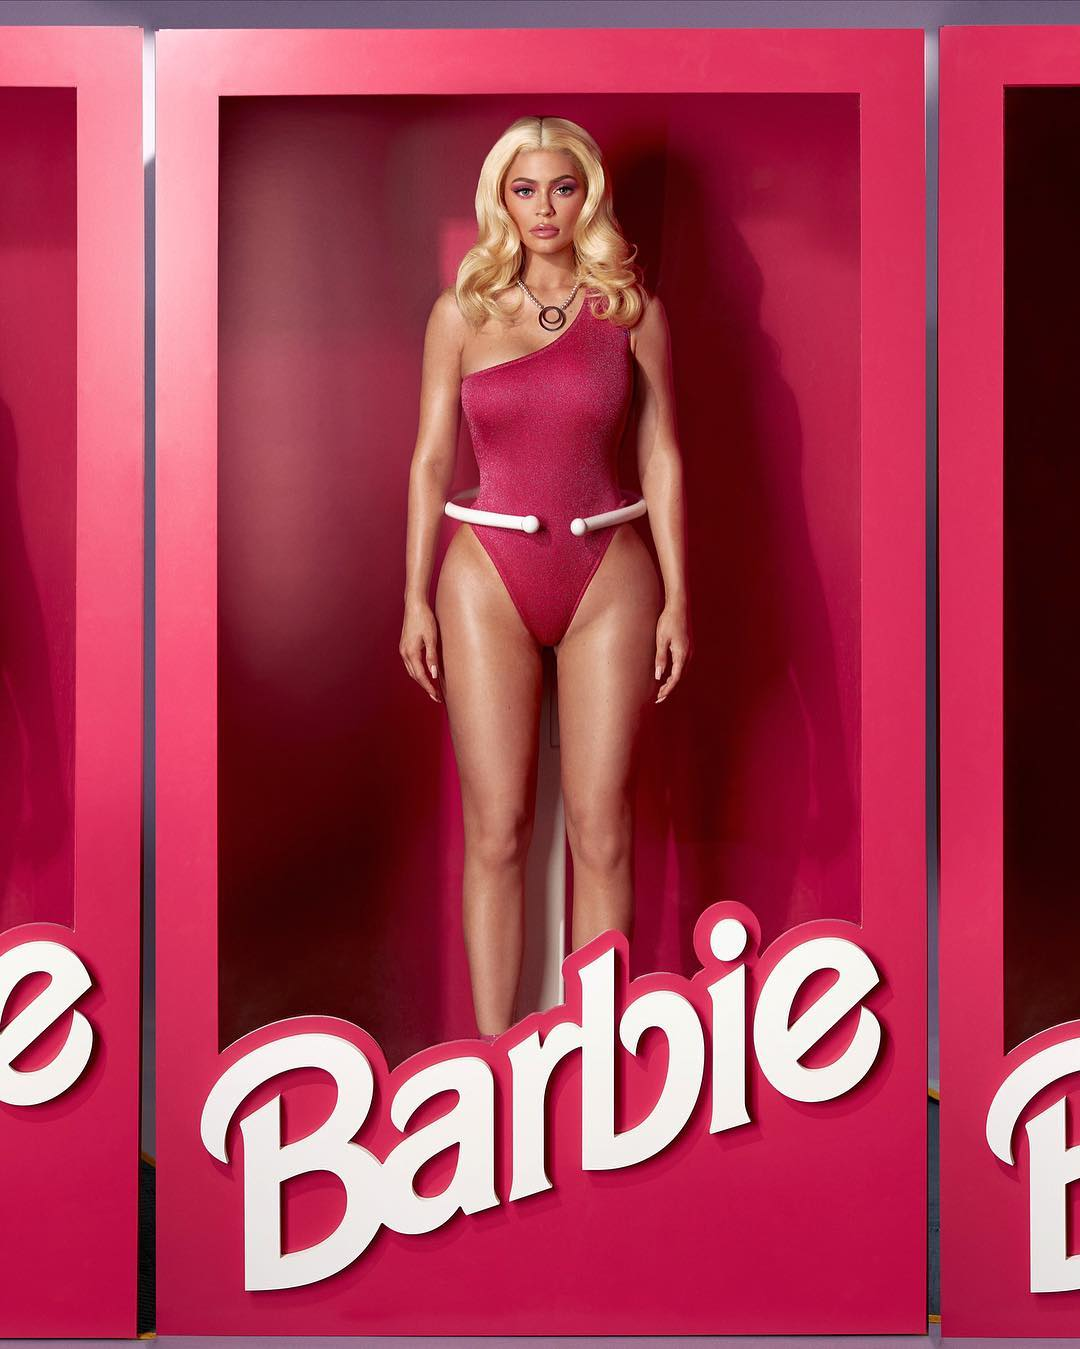 kylie jenner as barbie